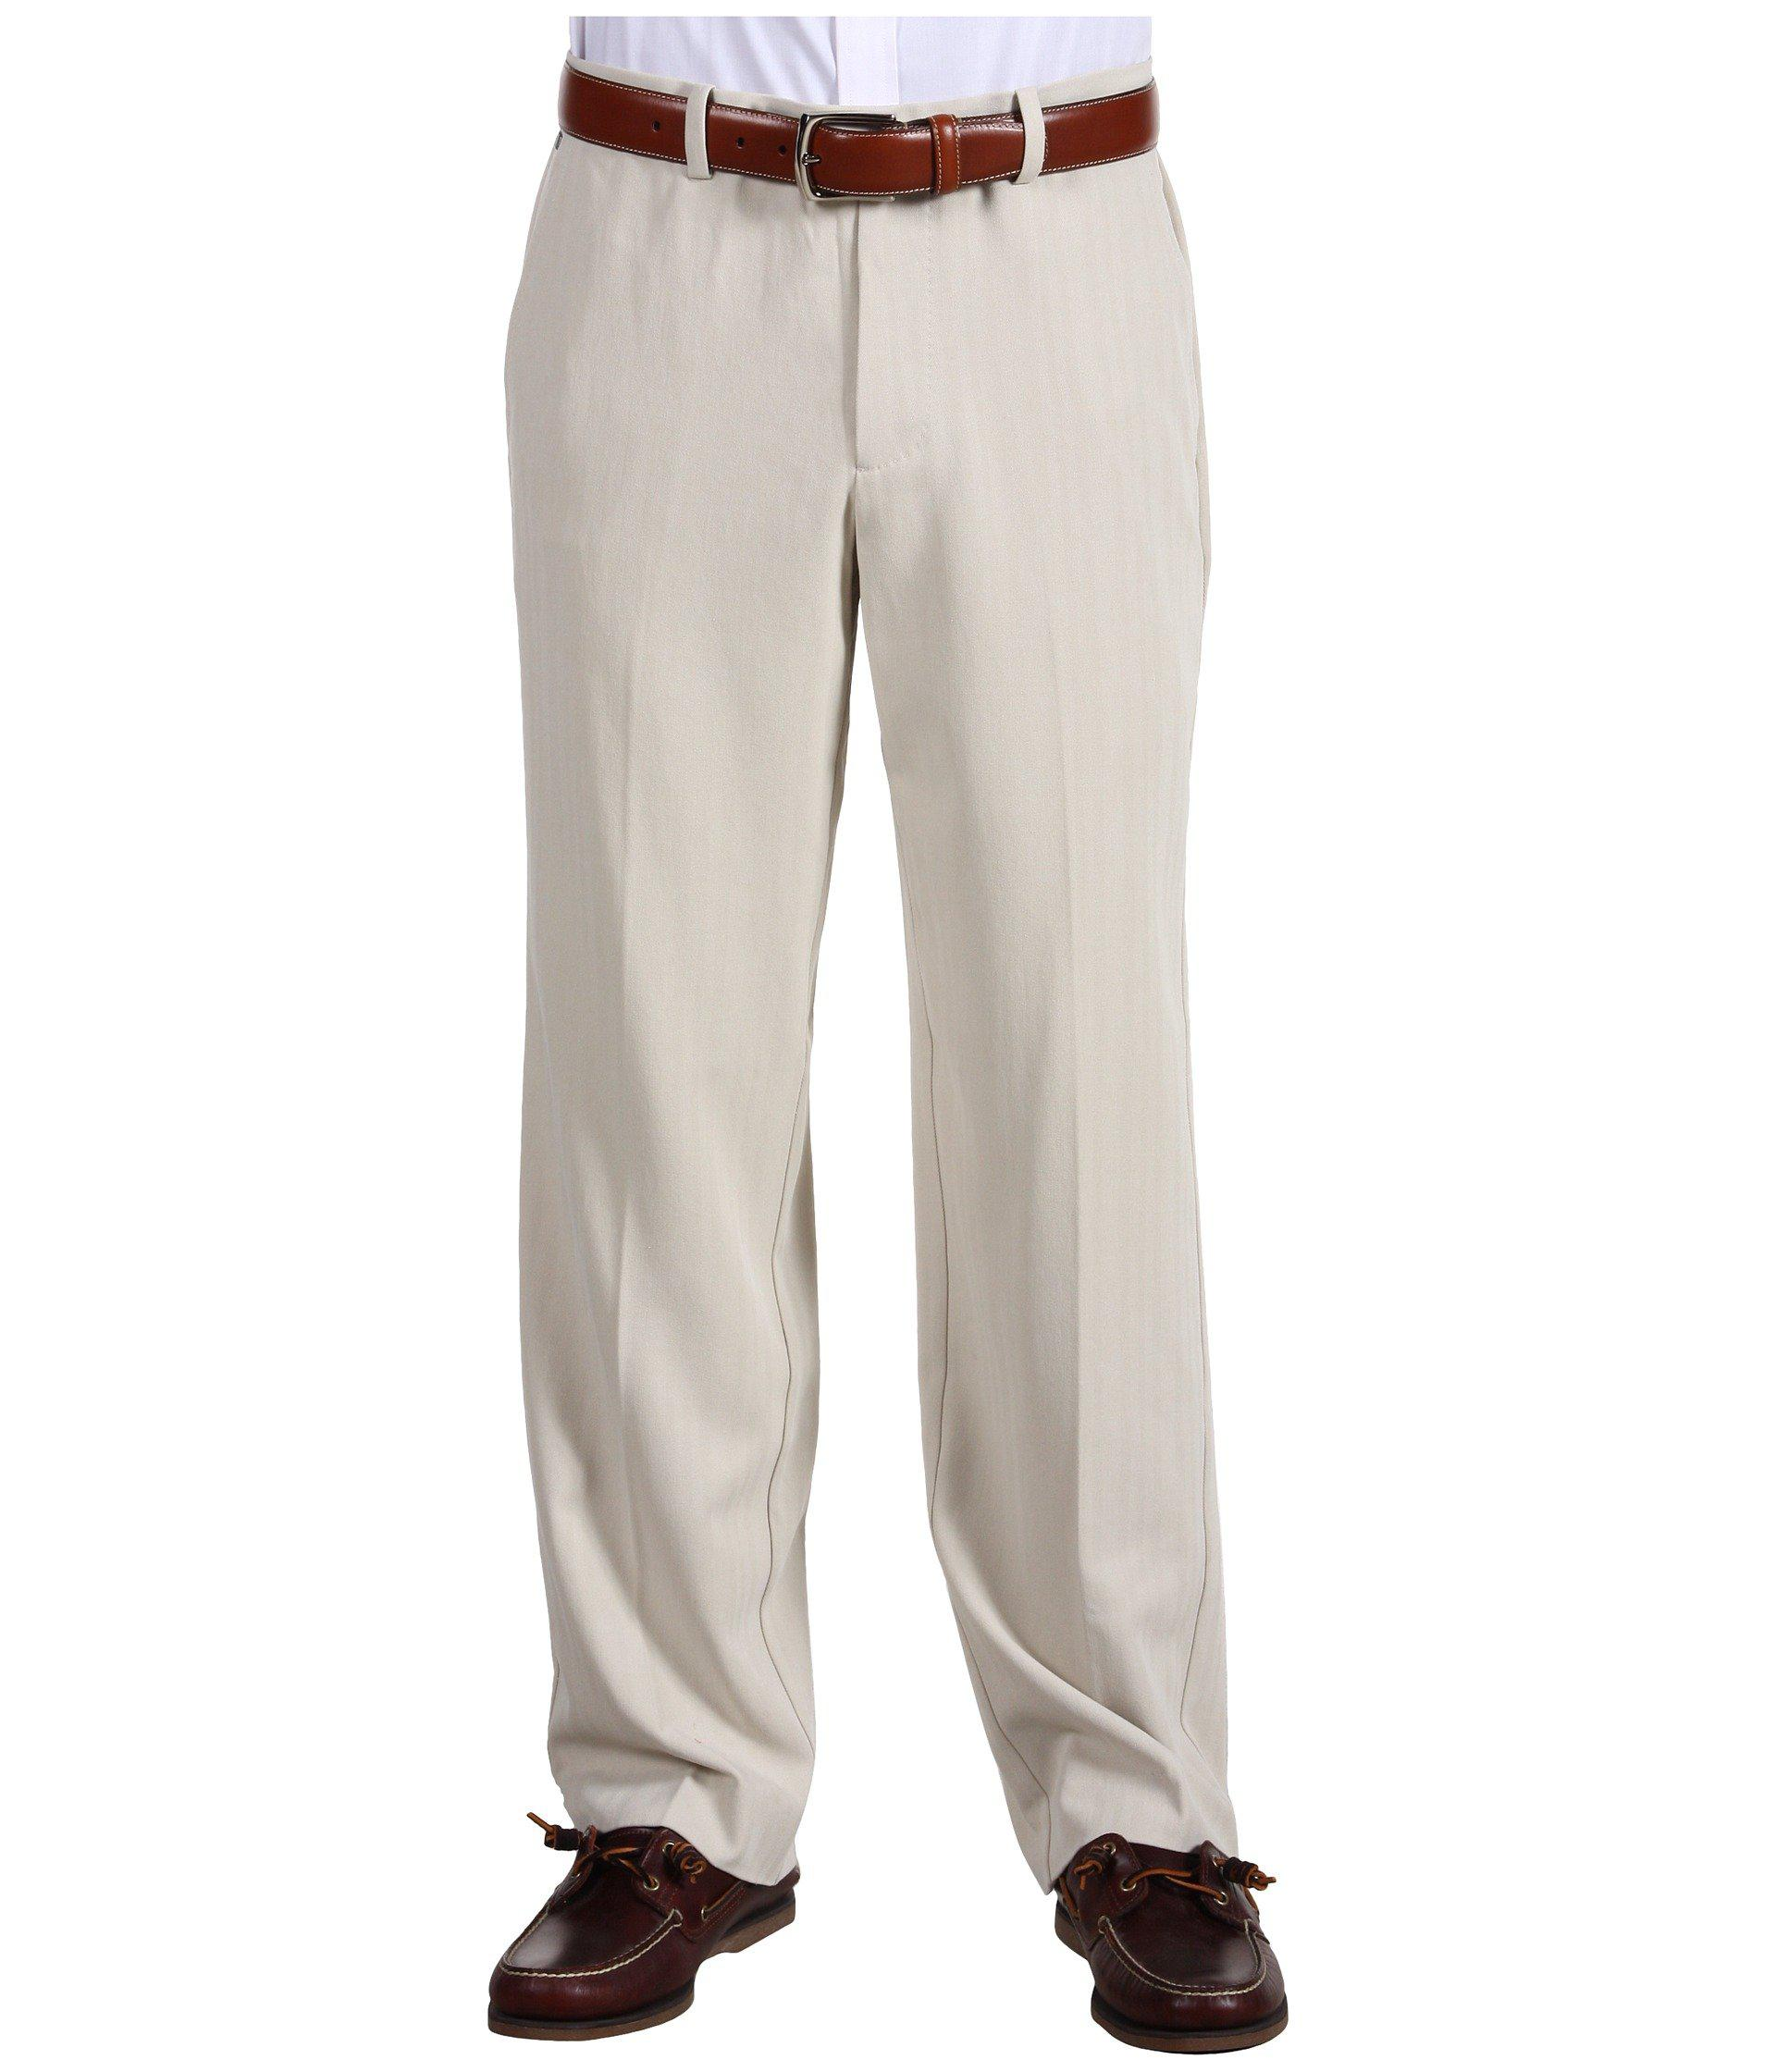 916bd510f14 Lyst - Tommy Bahama Flying Fishbone Flat Front Pant in Natural for Men